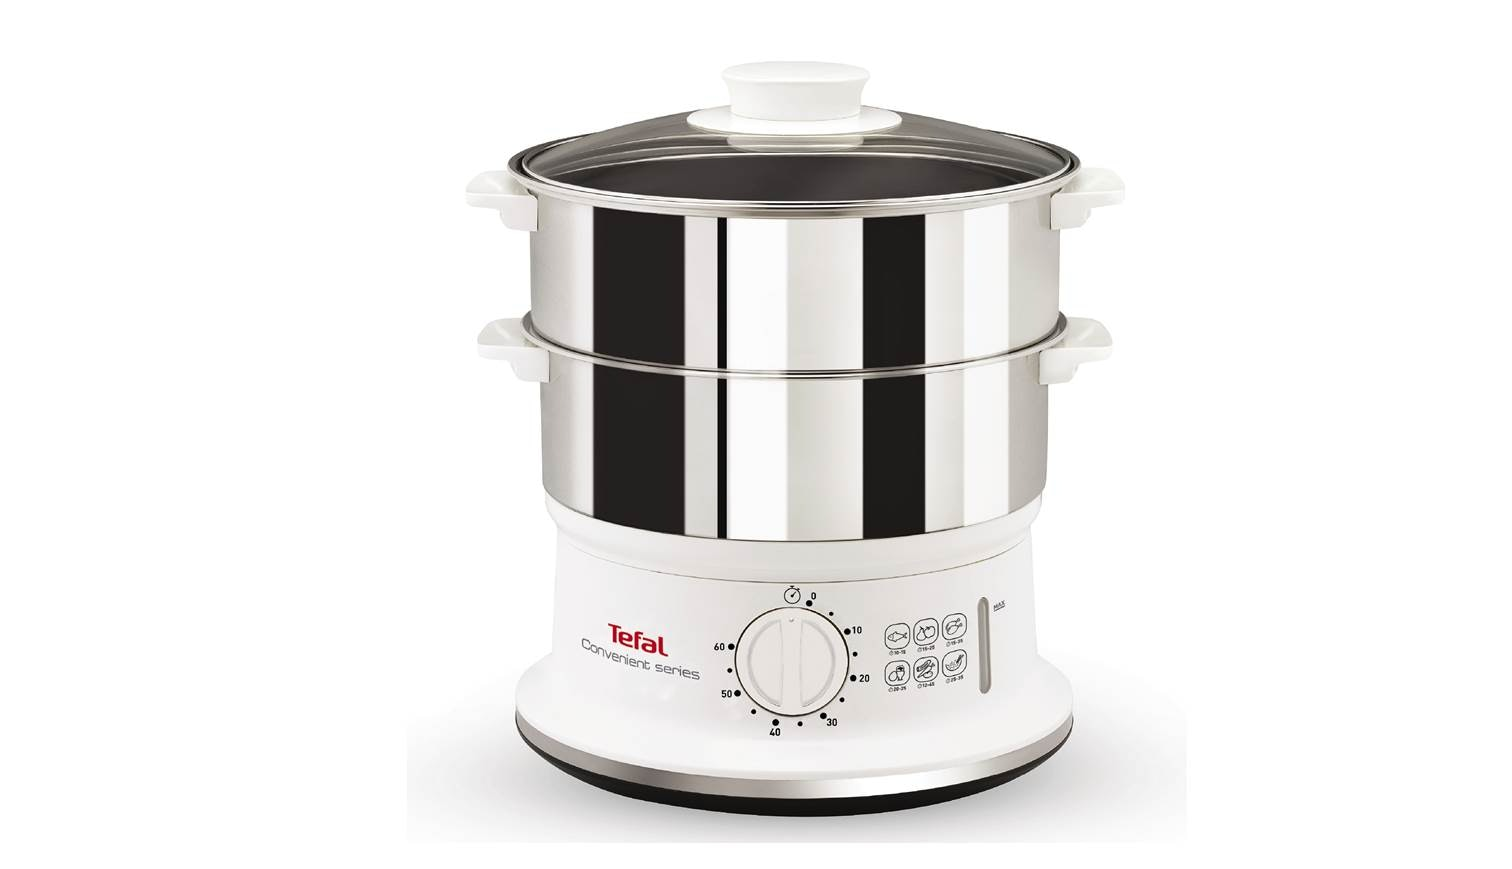 Tefal Vc 1451 Stainless Steel Convenient Steamer Harvey